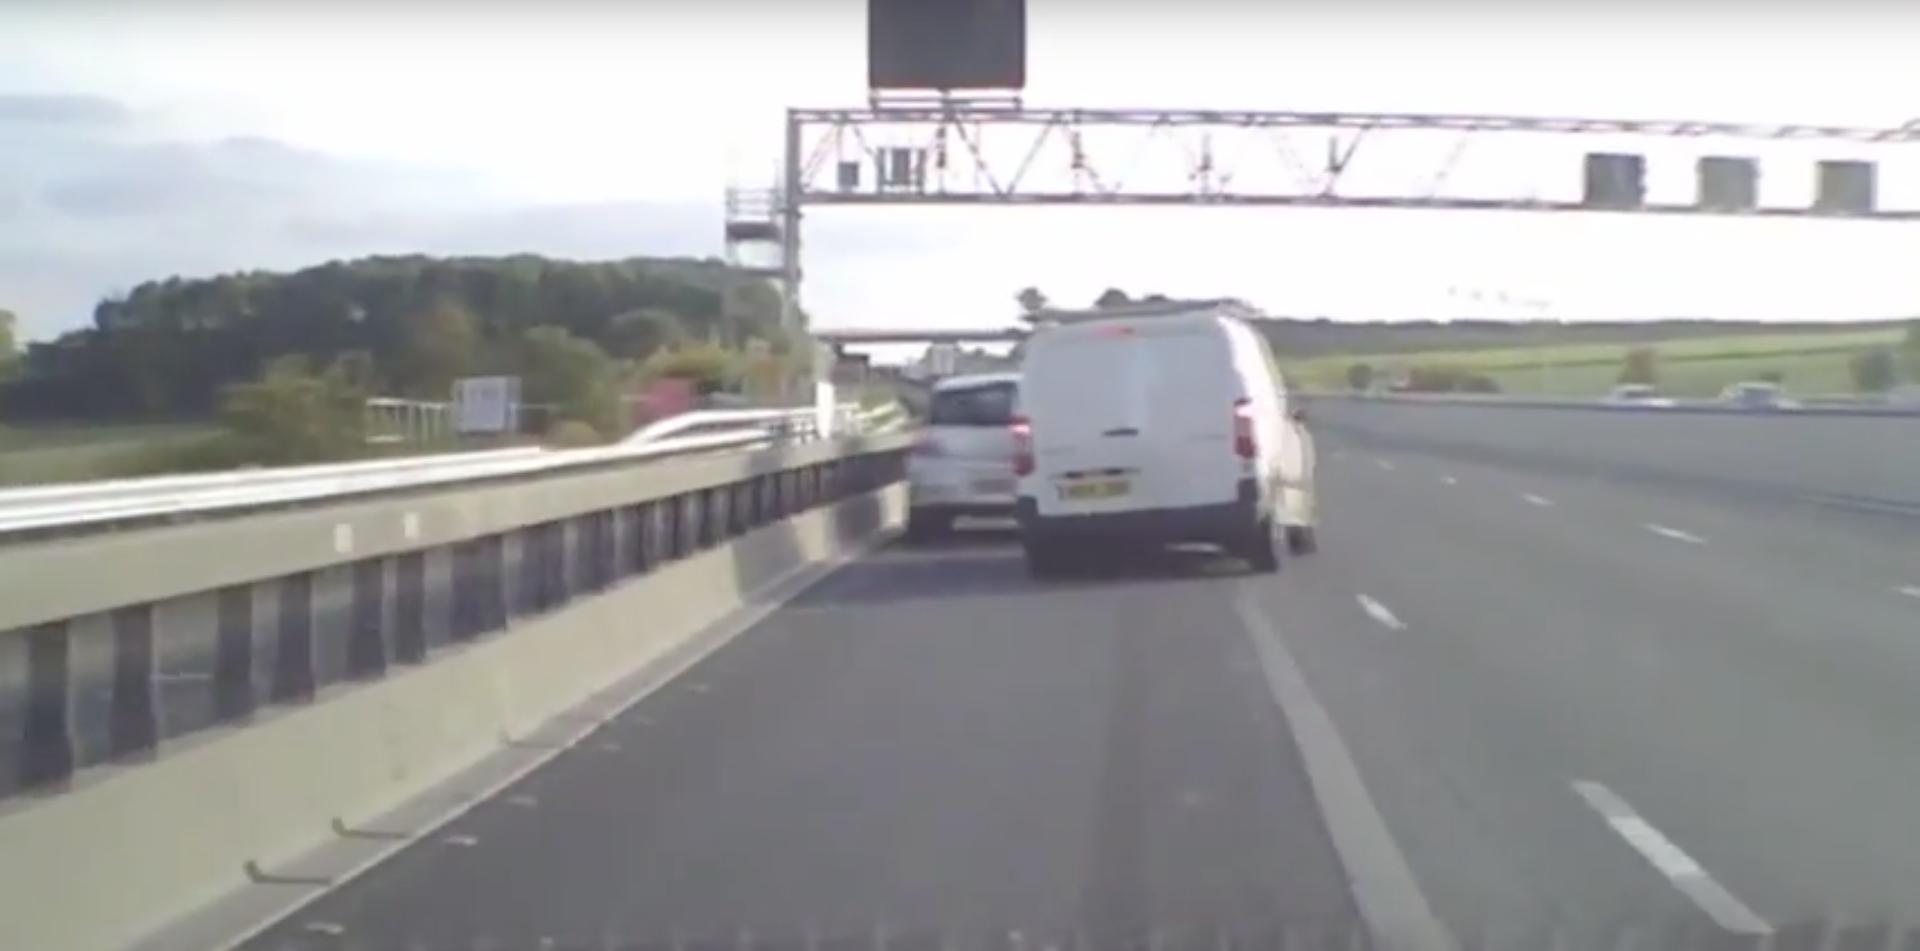 Watch This Heart-Stopping Near Miss In A 50mph Zone